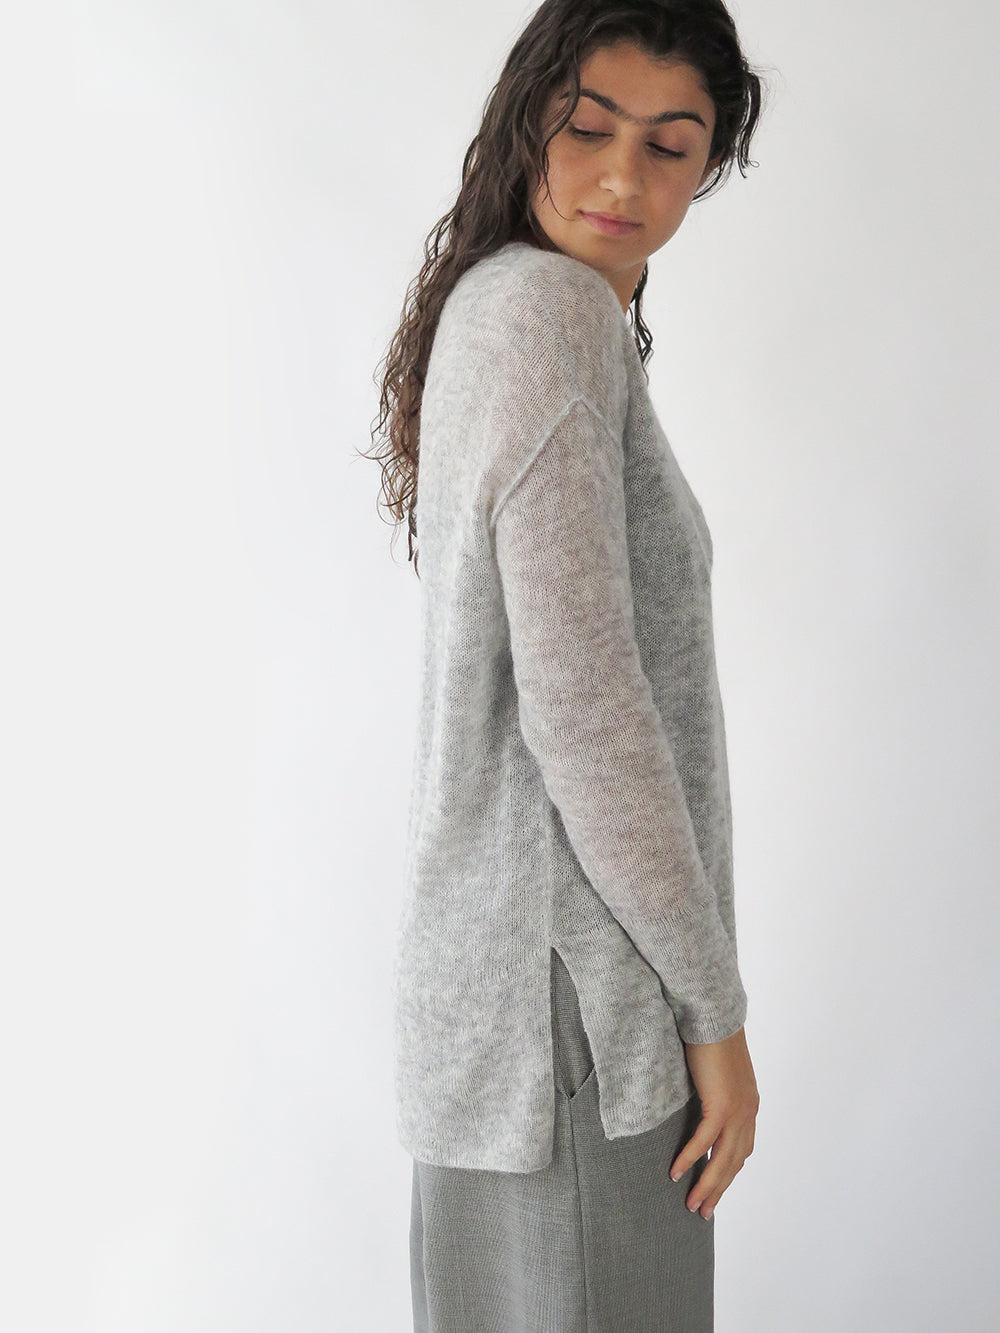 tissue v-neck pullover in light grey